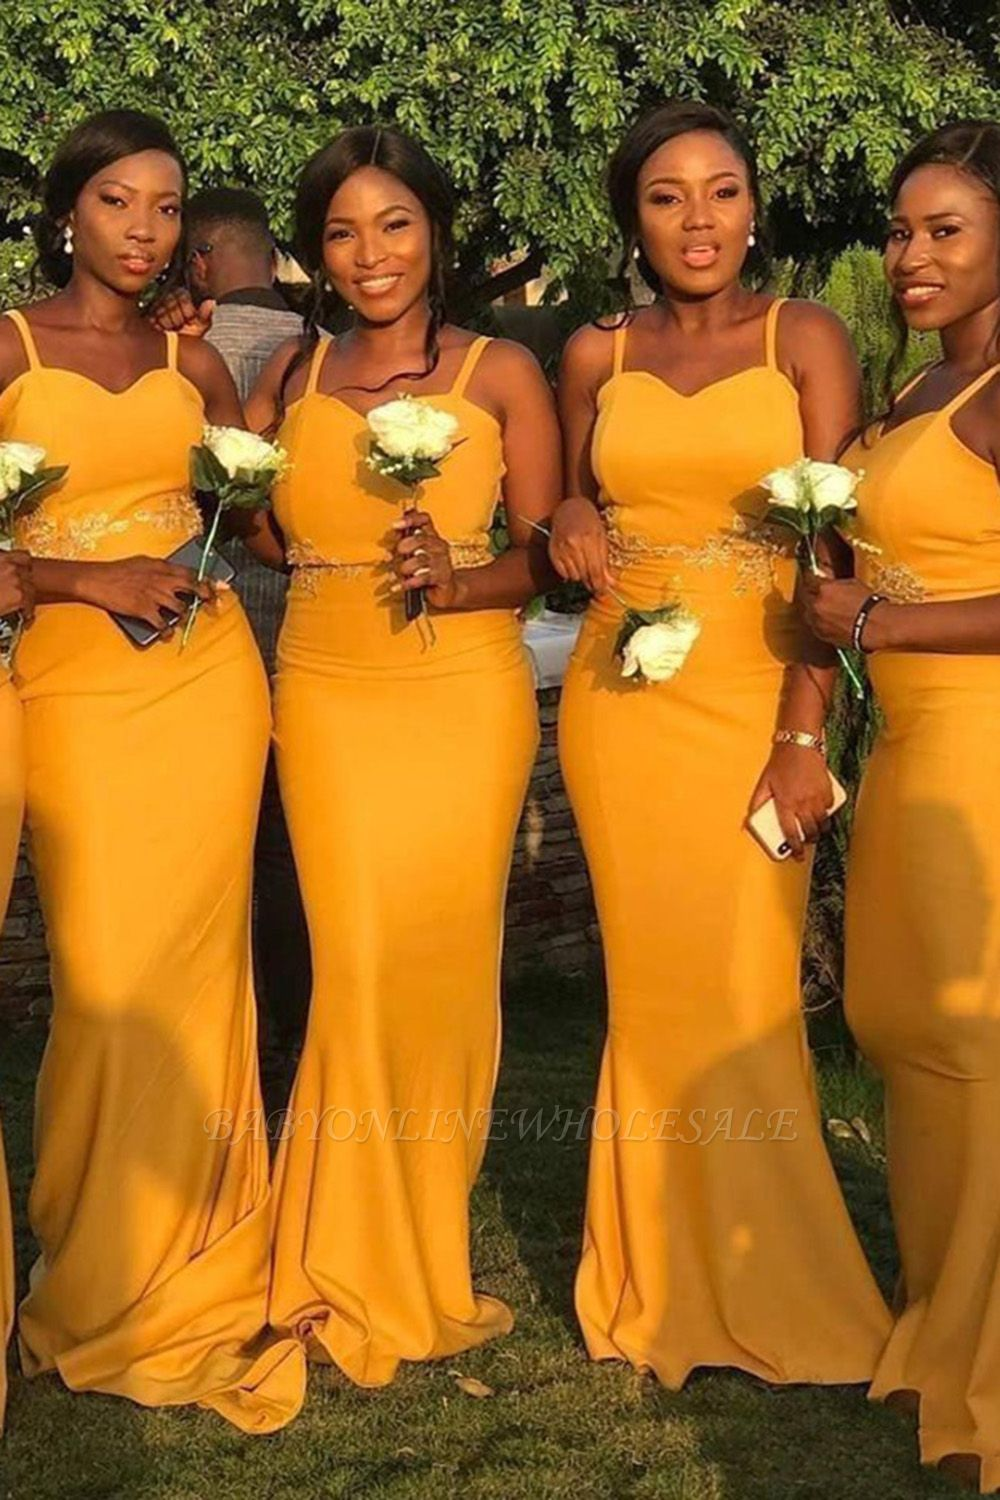 Sheath Sweetheart Neckline Spaghetti Yellow Lace Appliqued Bridesmaid Dresses | Affordable Long Court Train Wedding Party Dresses